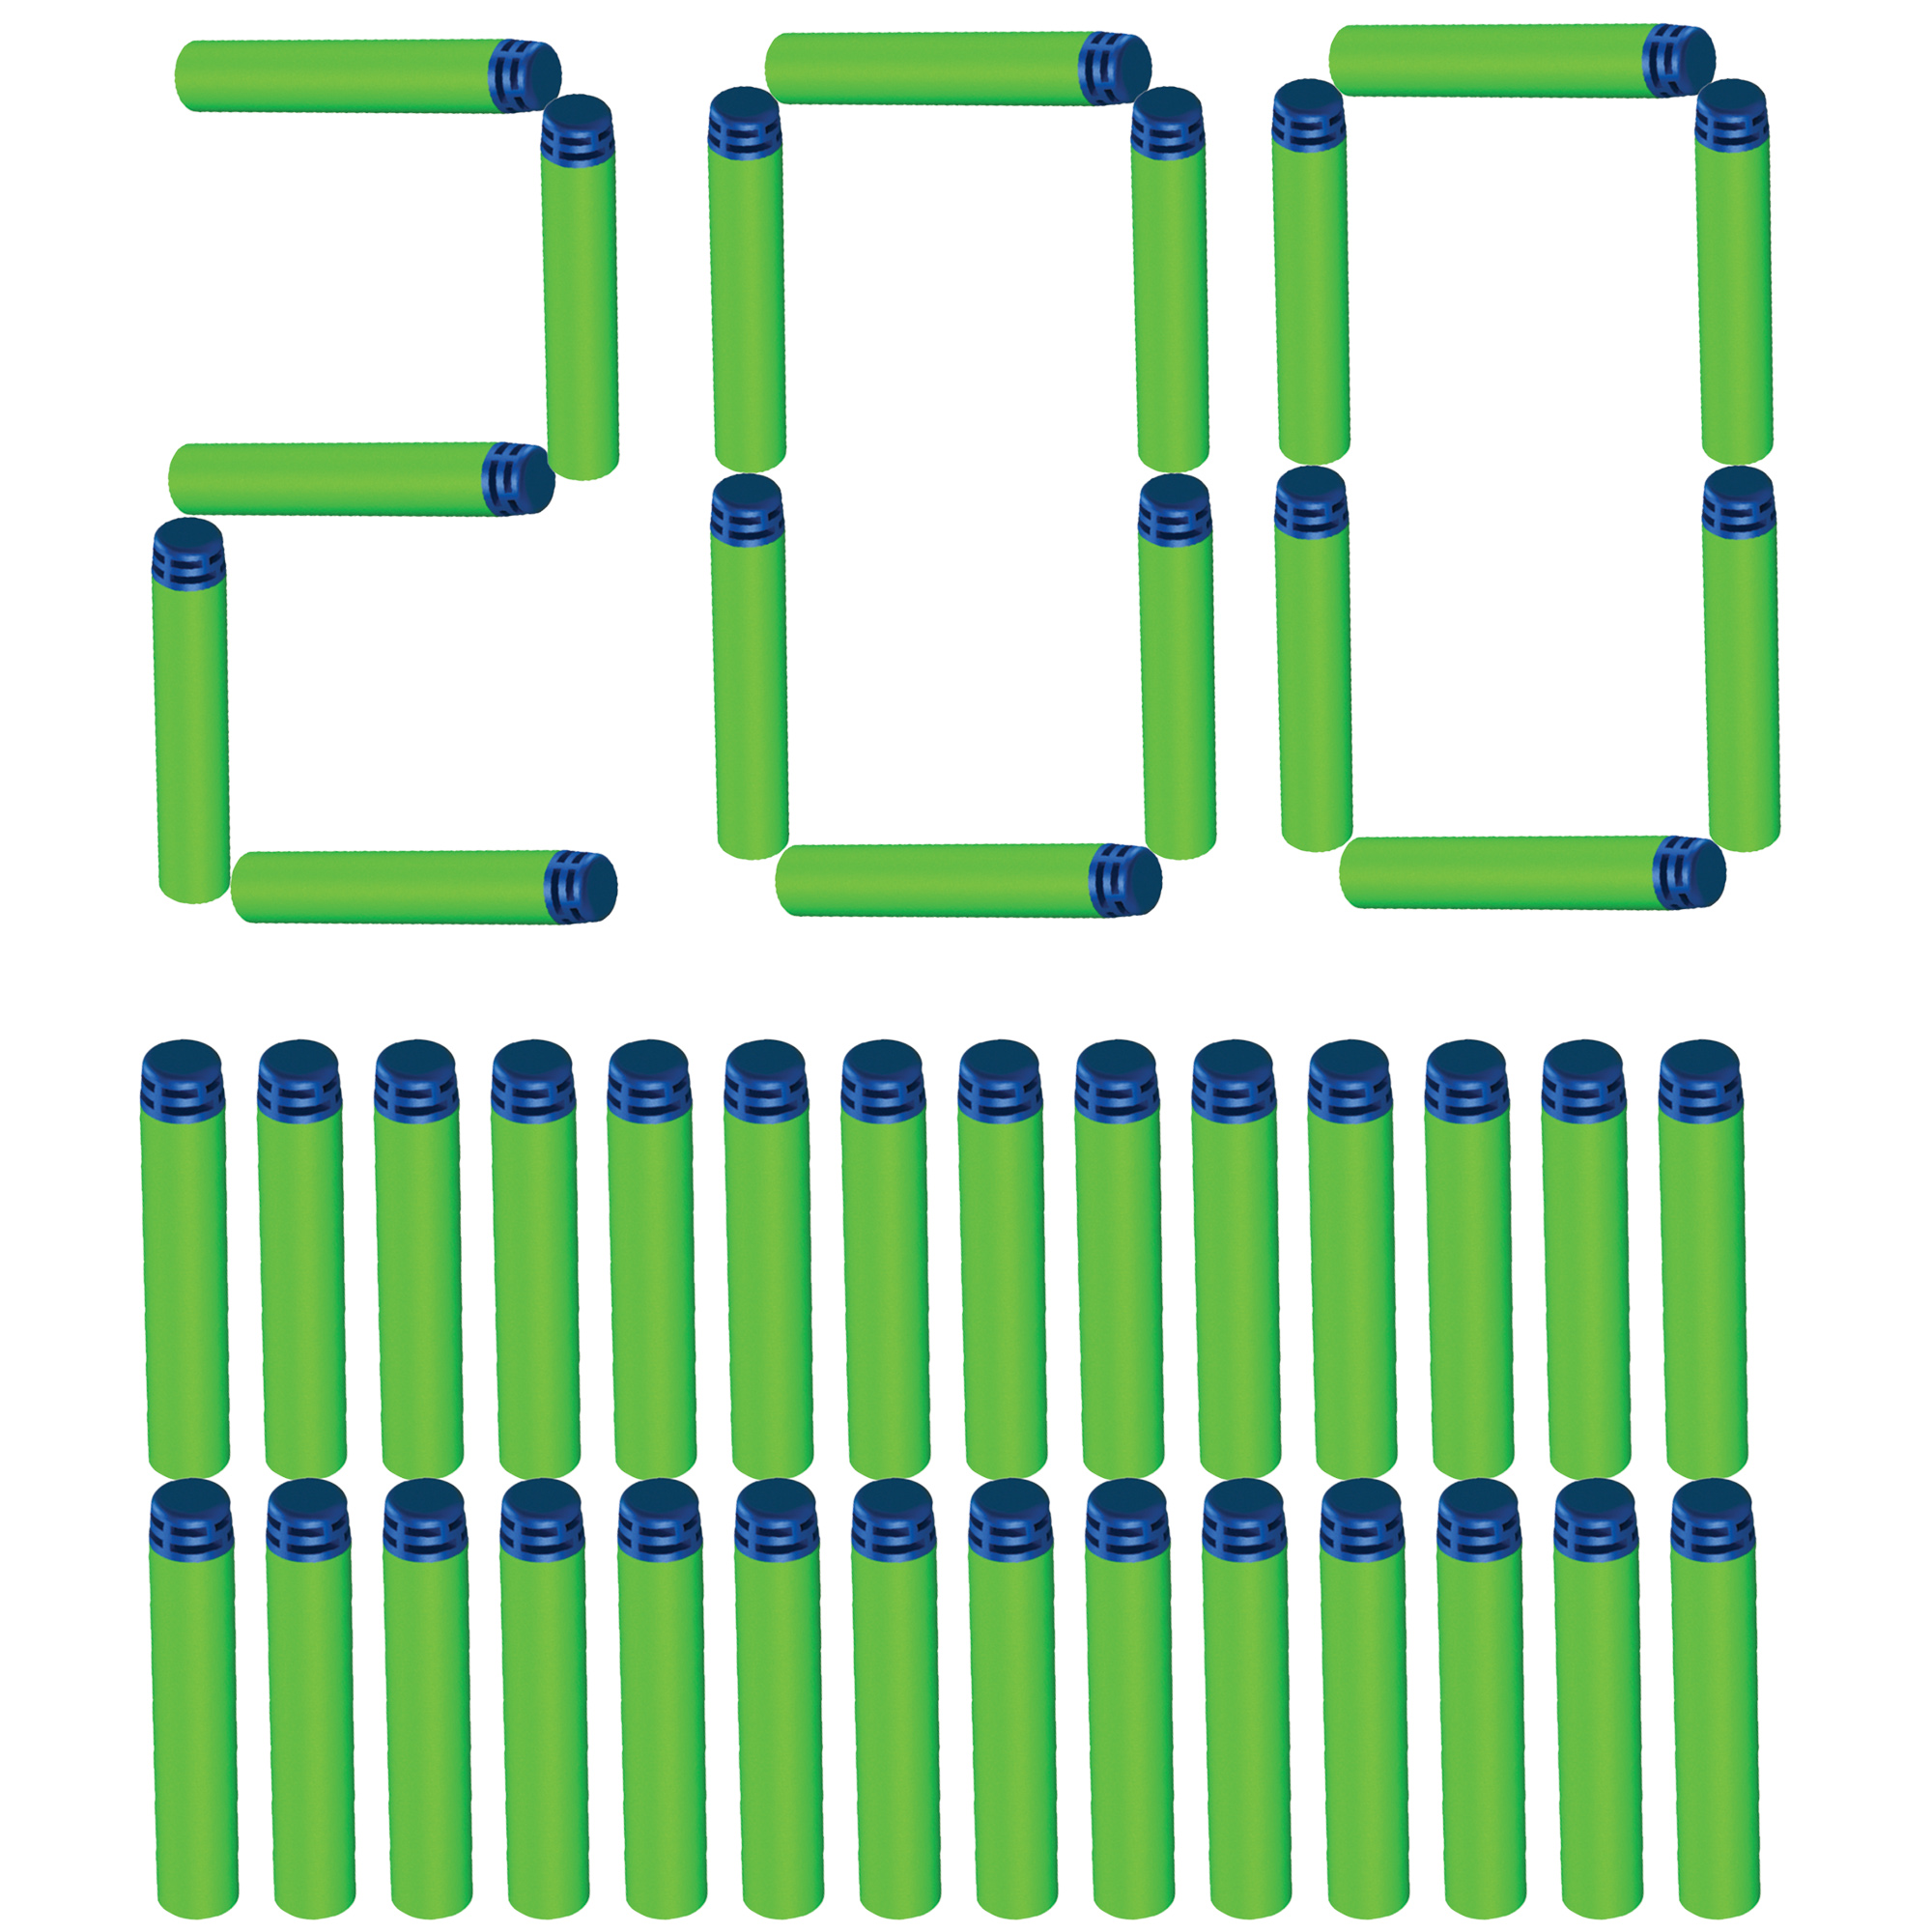 Adventure Force 200-Dart Refill - Works with All Adventure Force Blasters and most Standard NERF Elite Blasters